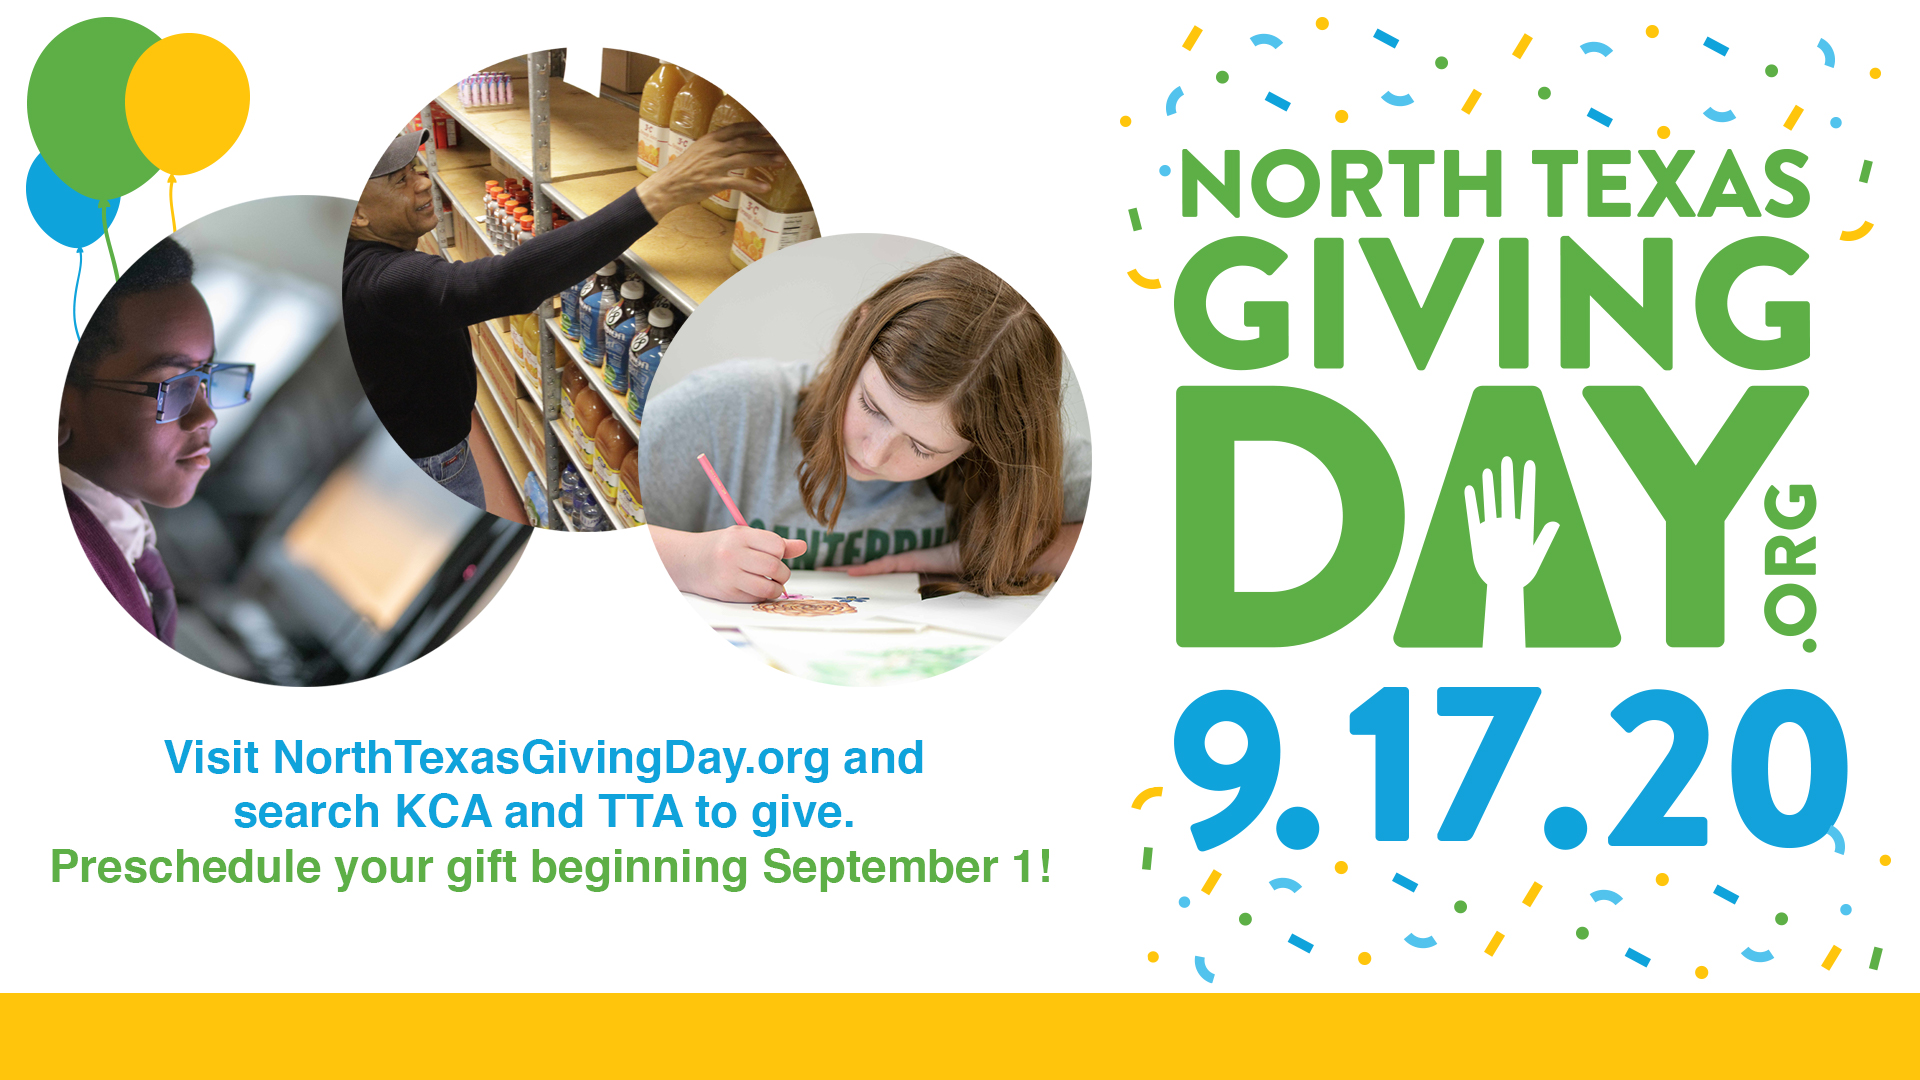 Support KCA and TTA through the 2020 North Texas Giving Day